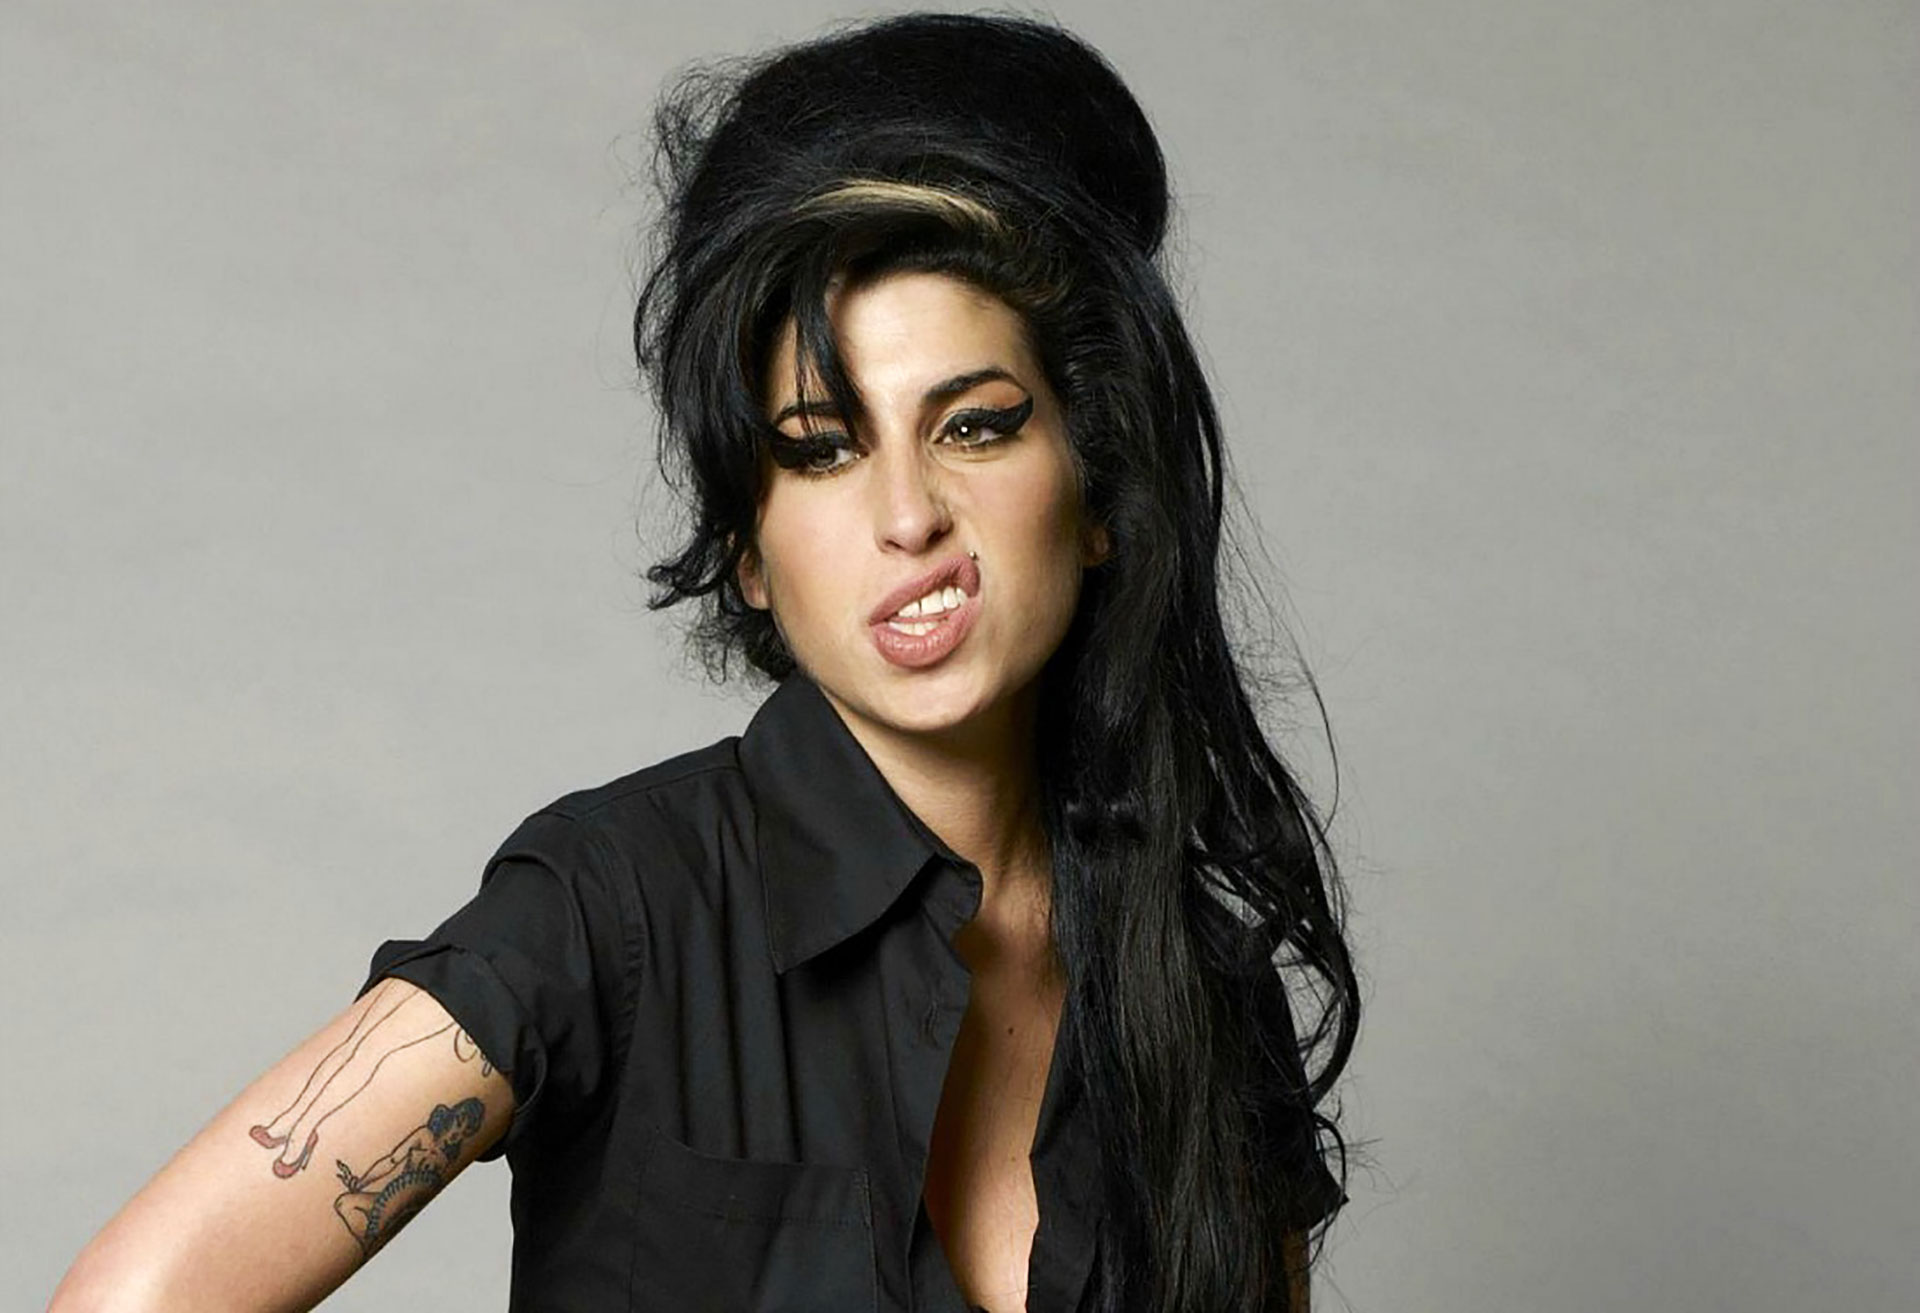 Amy Winehouse facts